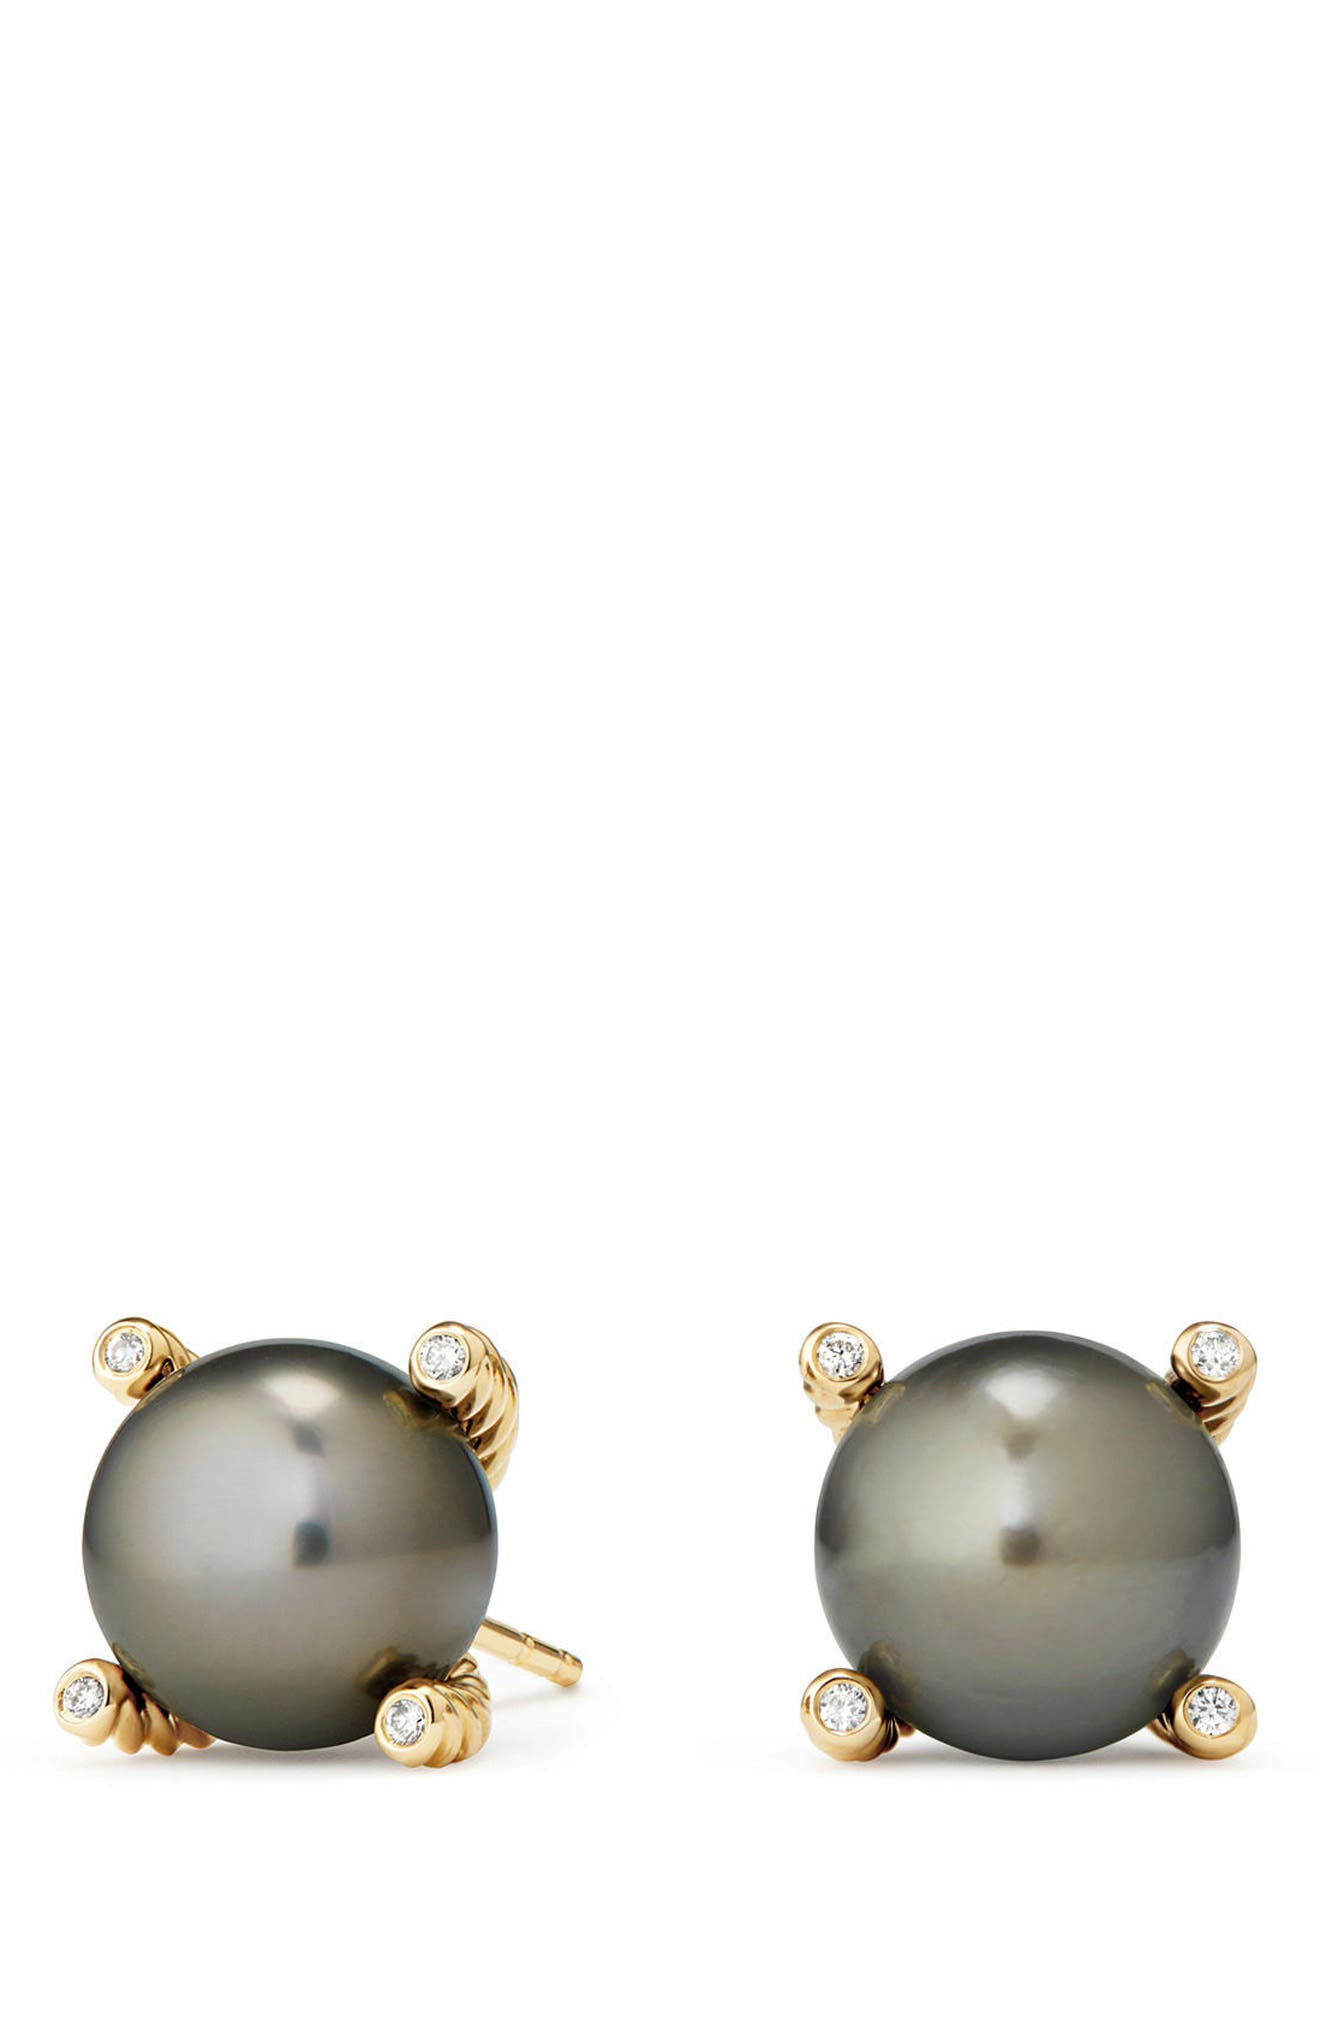 David Yurman Genuine Pearl Earrings with Diamonds in 18K Gold